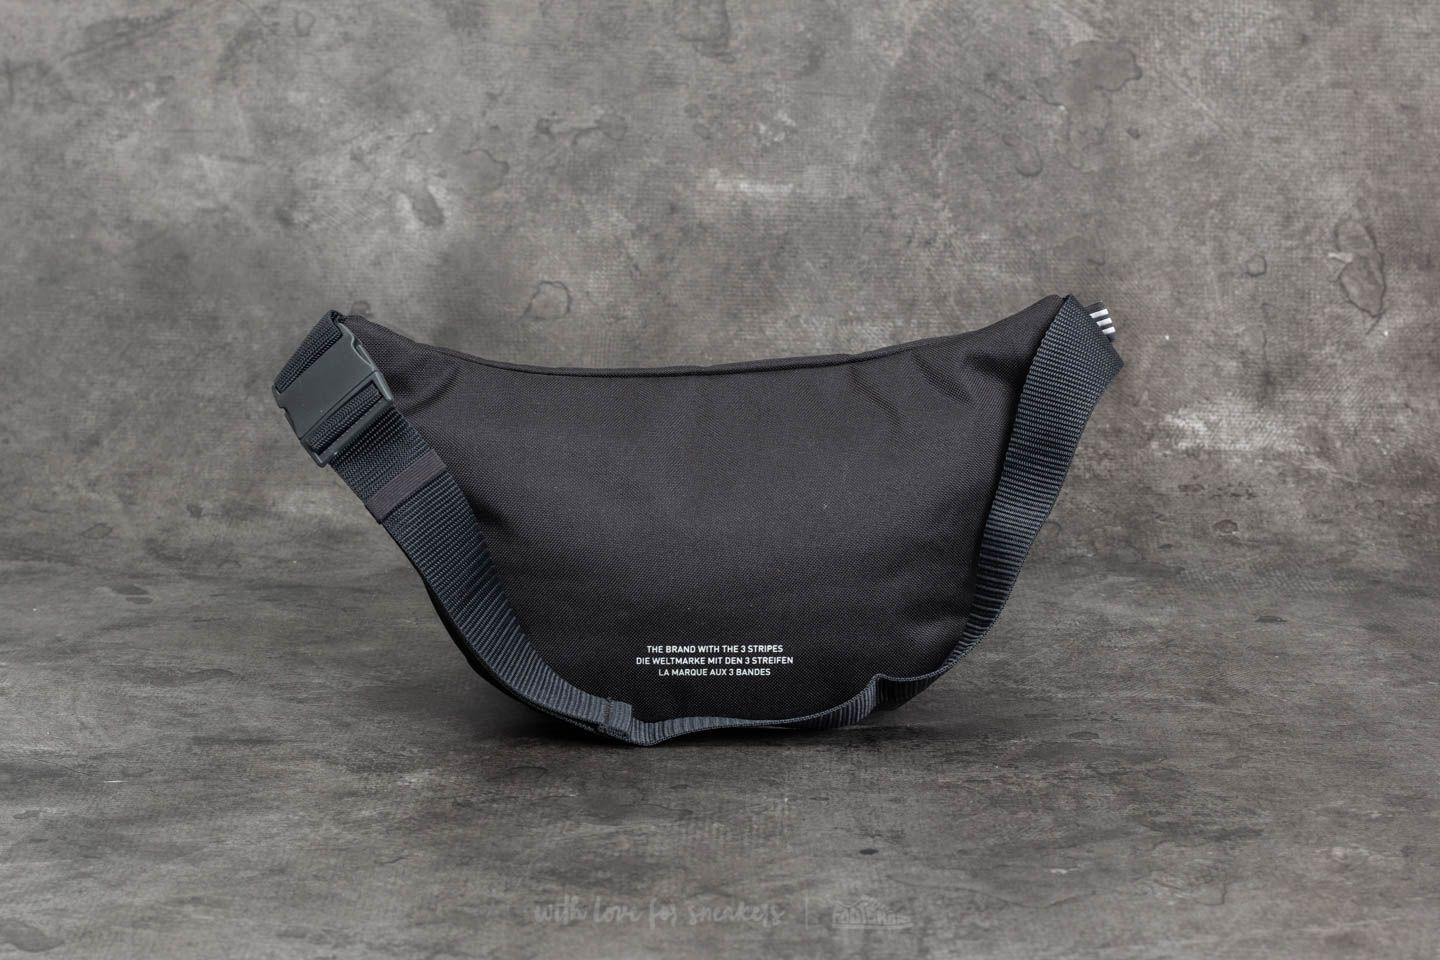 b8883b2829 Lyst - adidas Originals Adidas Waistbag Carbon in Gray for Men